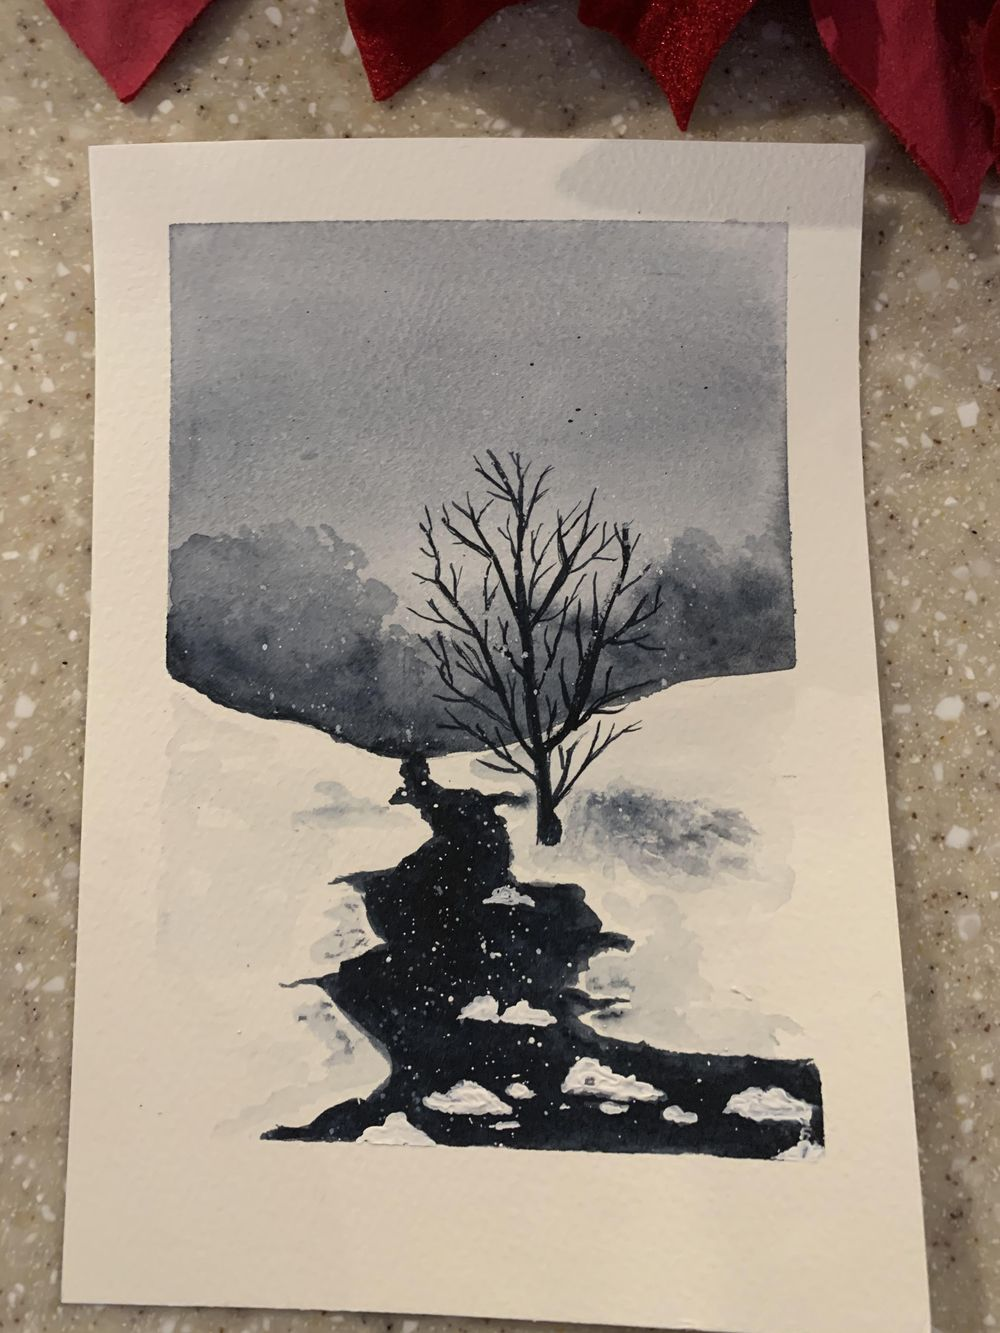 Let it Snow! - image 2 - student project